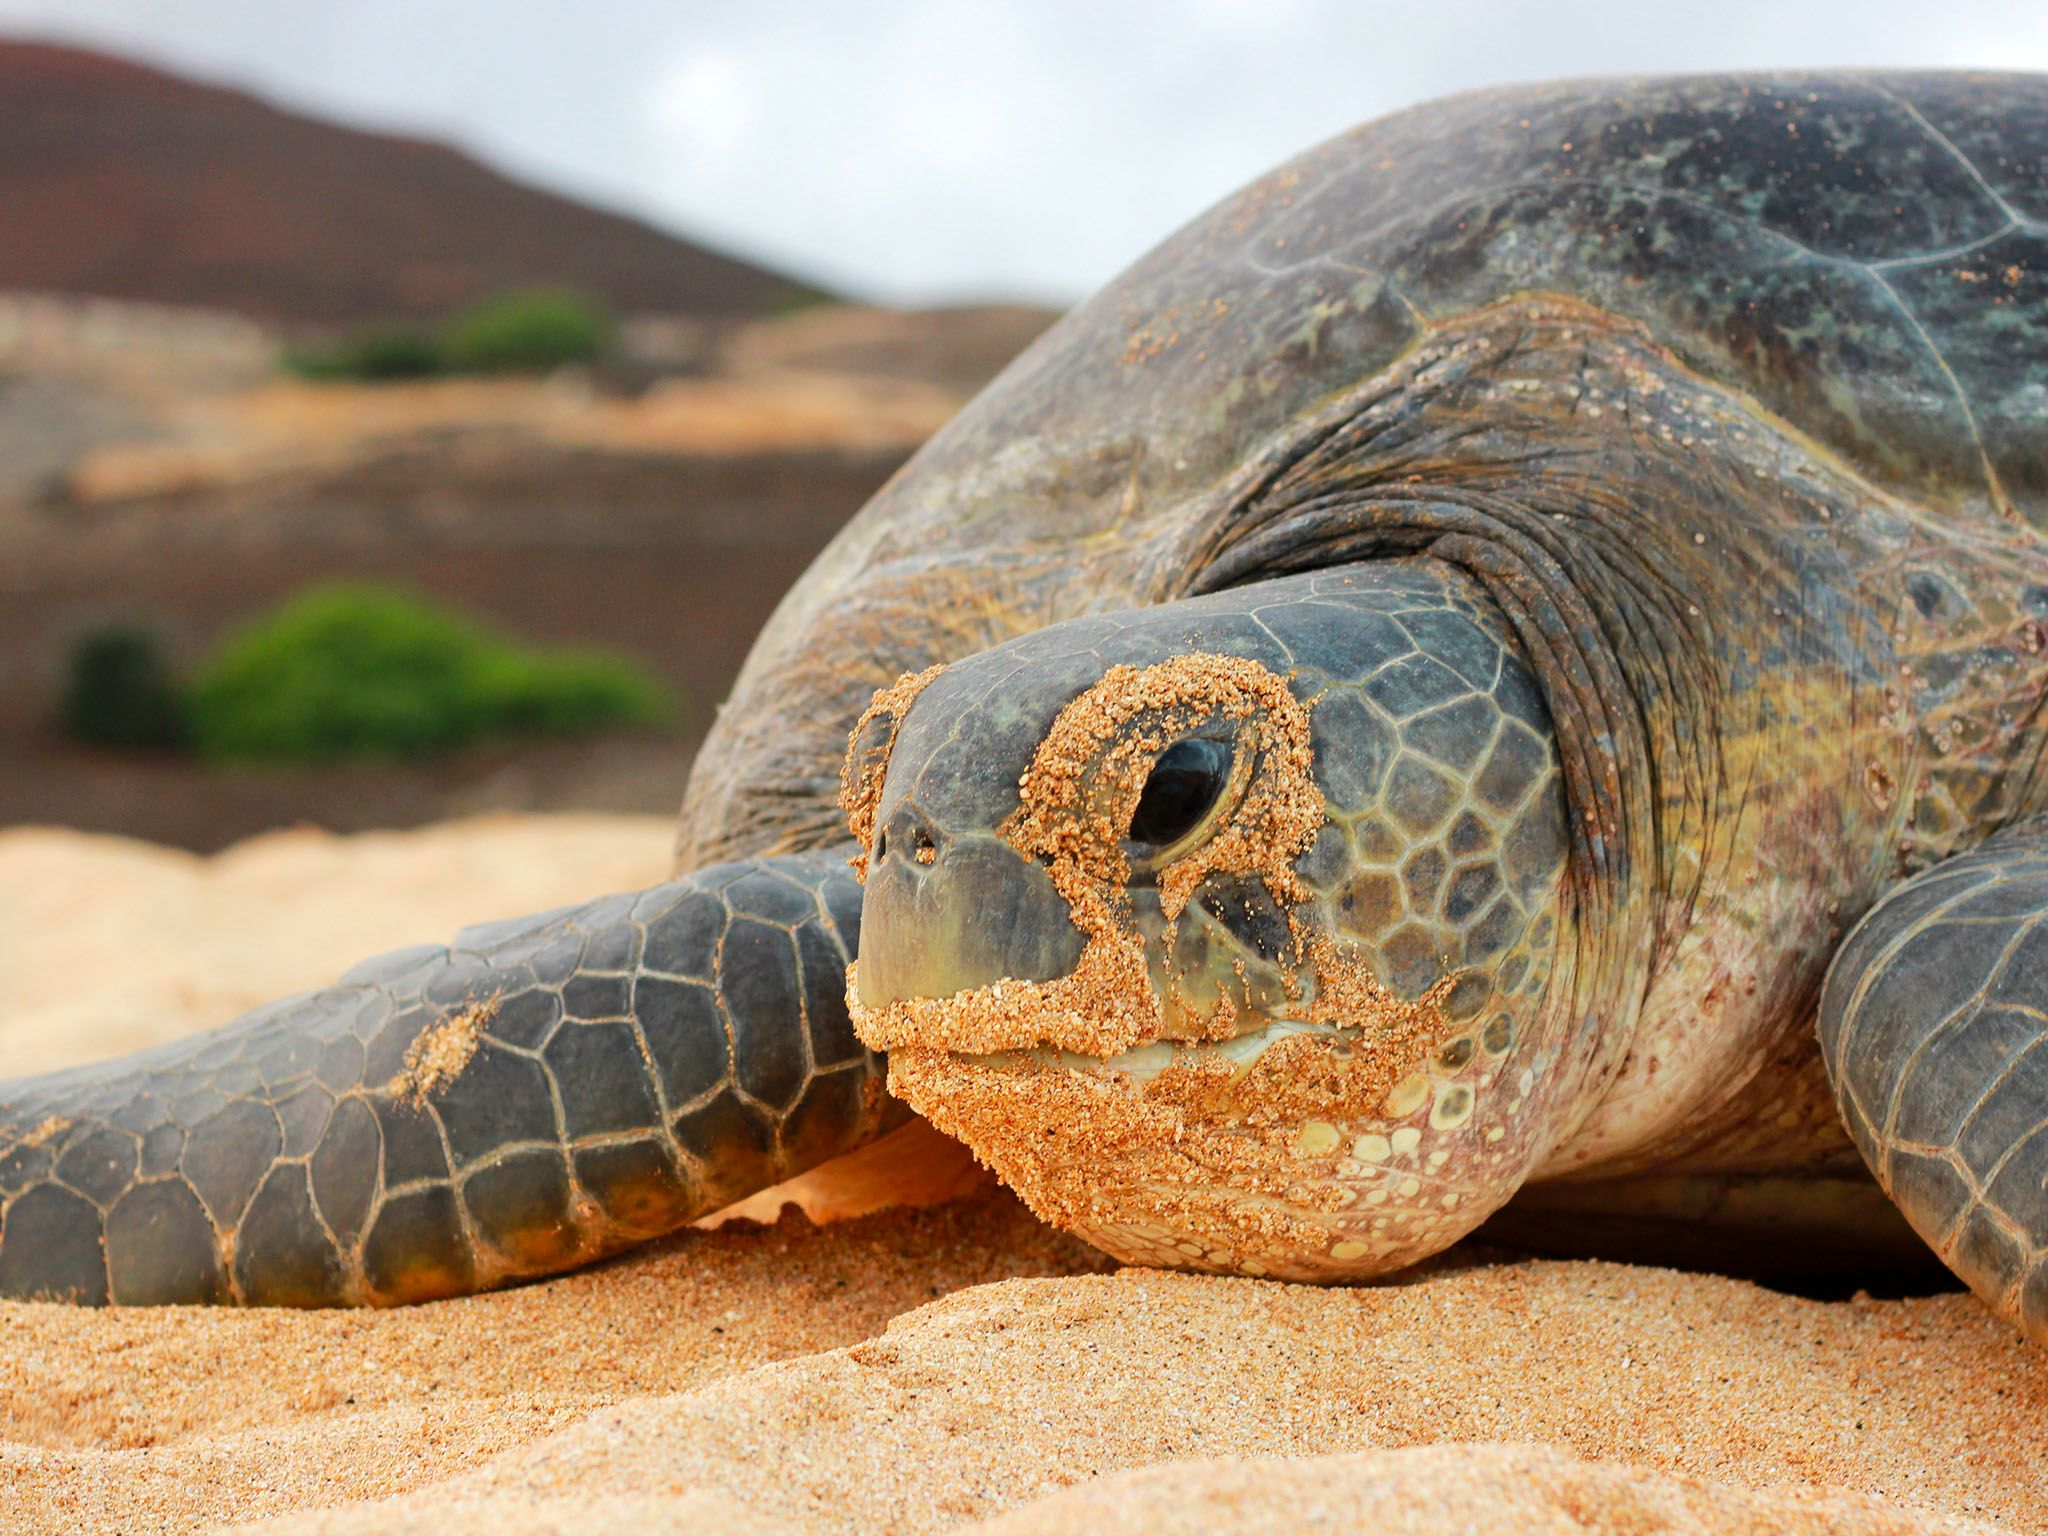 Ascension Island: Close-up of a Green Turtle, its face covered in sand. This image is from Wild... [Photo of the day - October 2015]